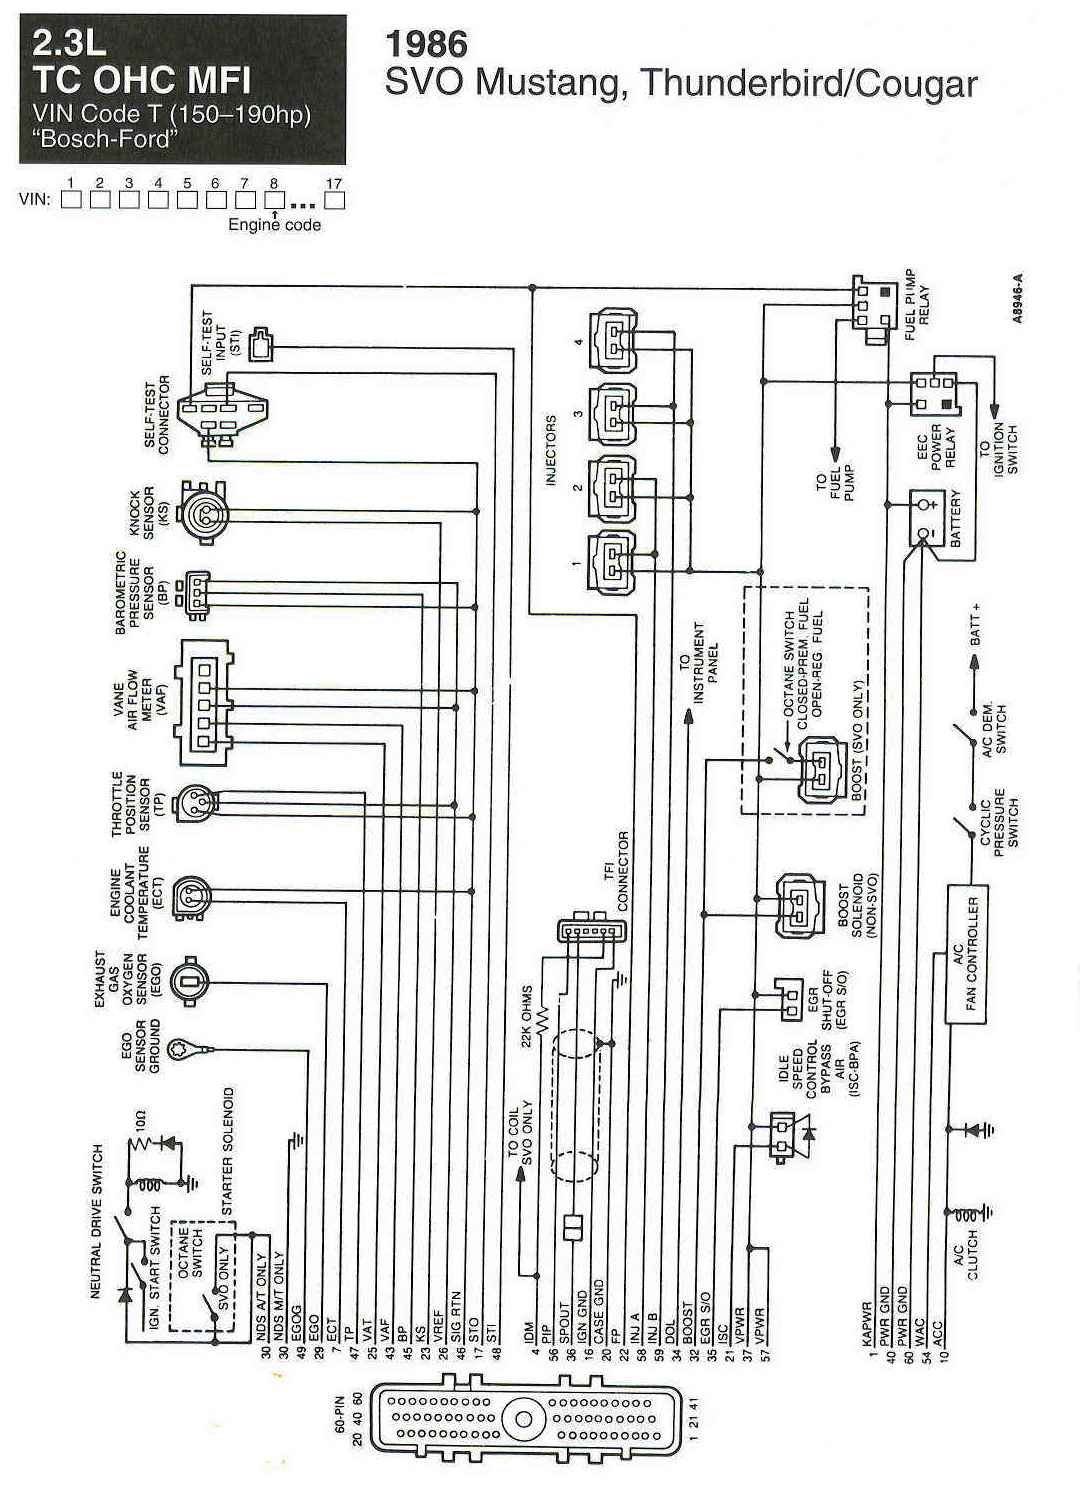 89 Mustang Ecm Wiring Diagram